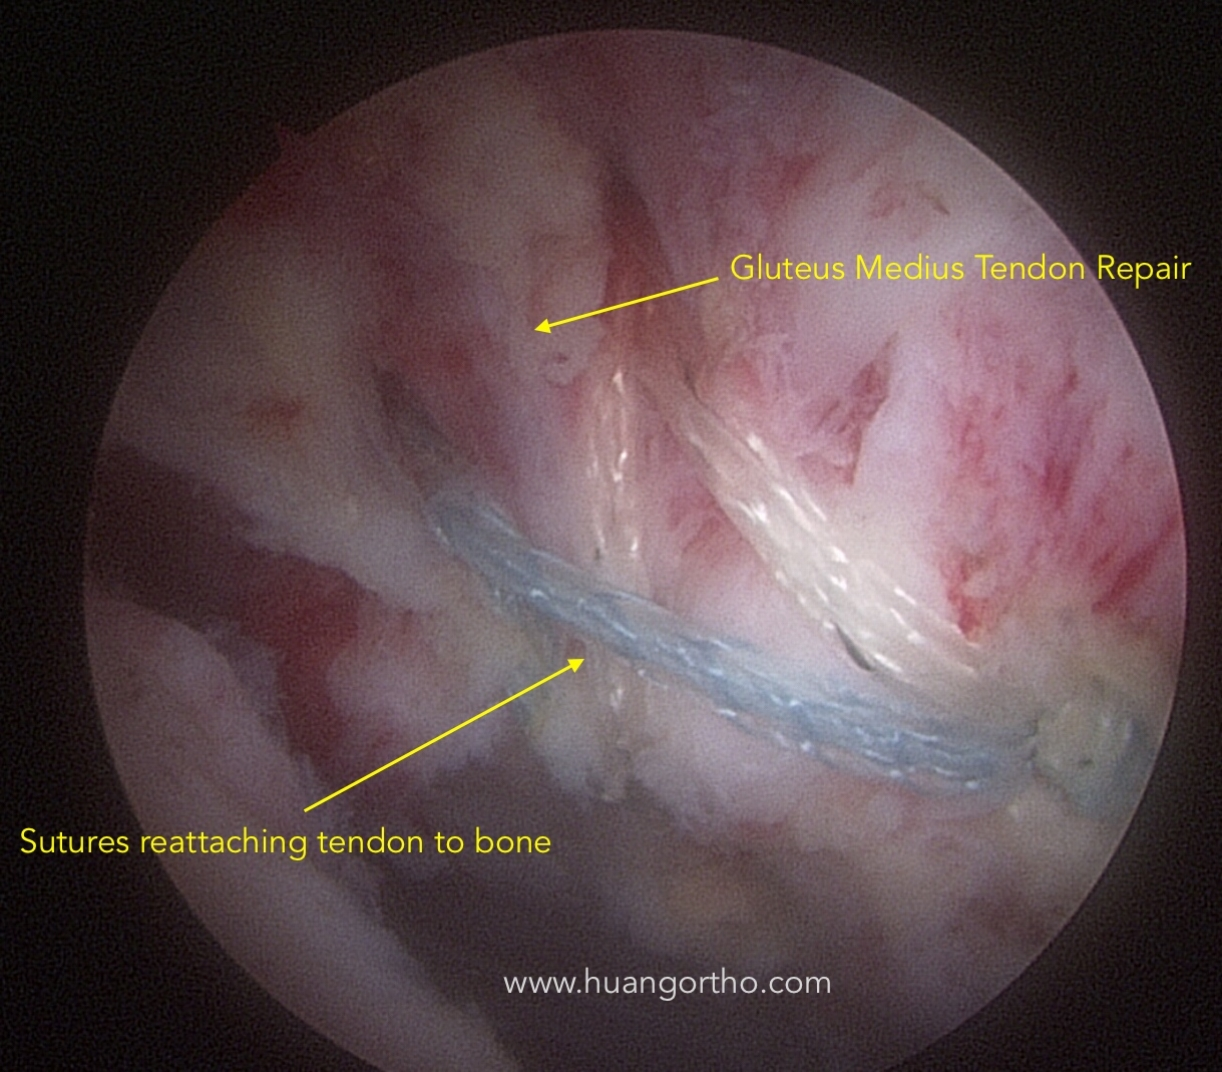 Arthroscopic view of final gluteus medius tendon repair.  This technique used a double row or bridging suture construct.